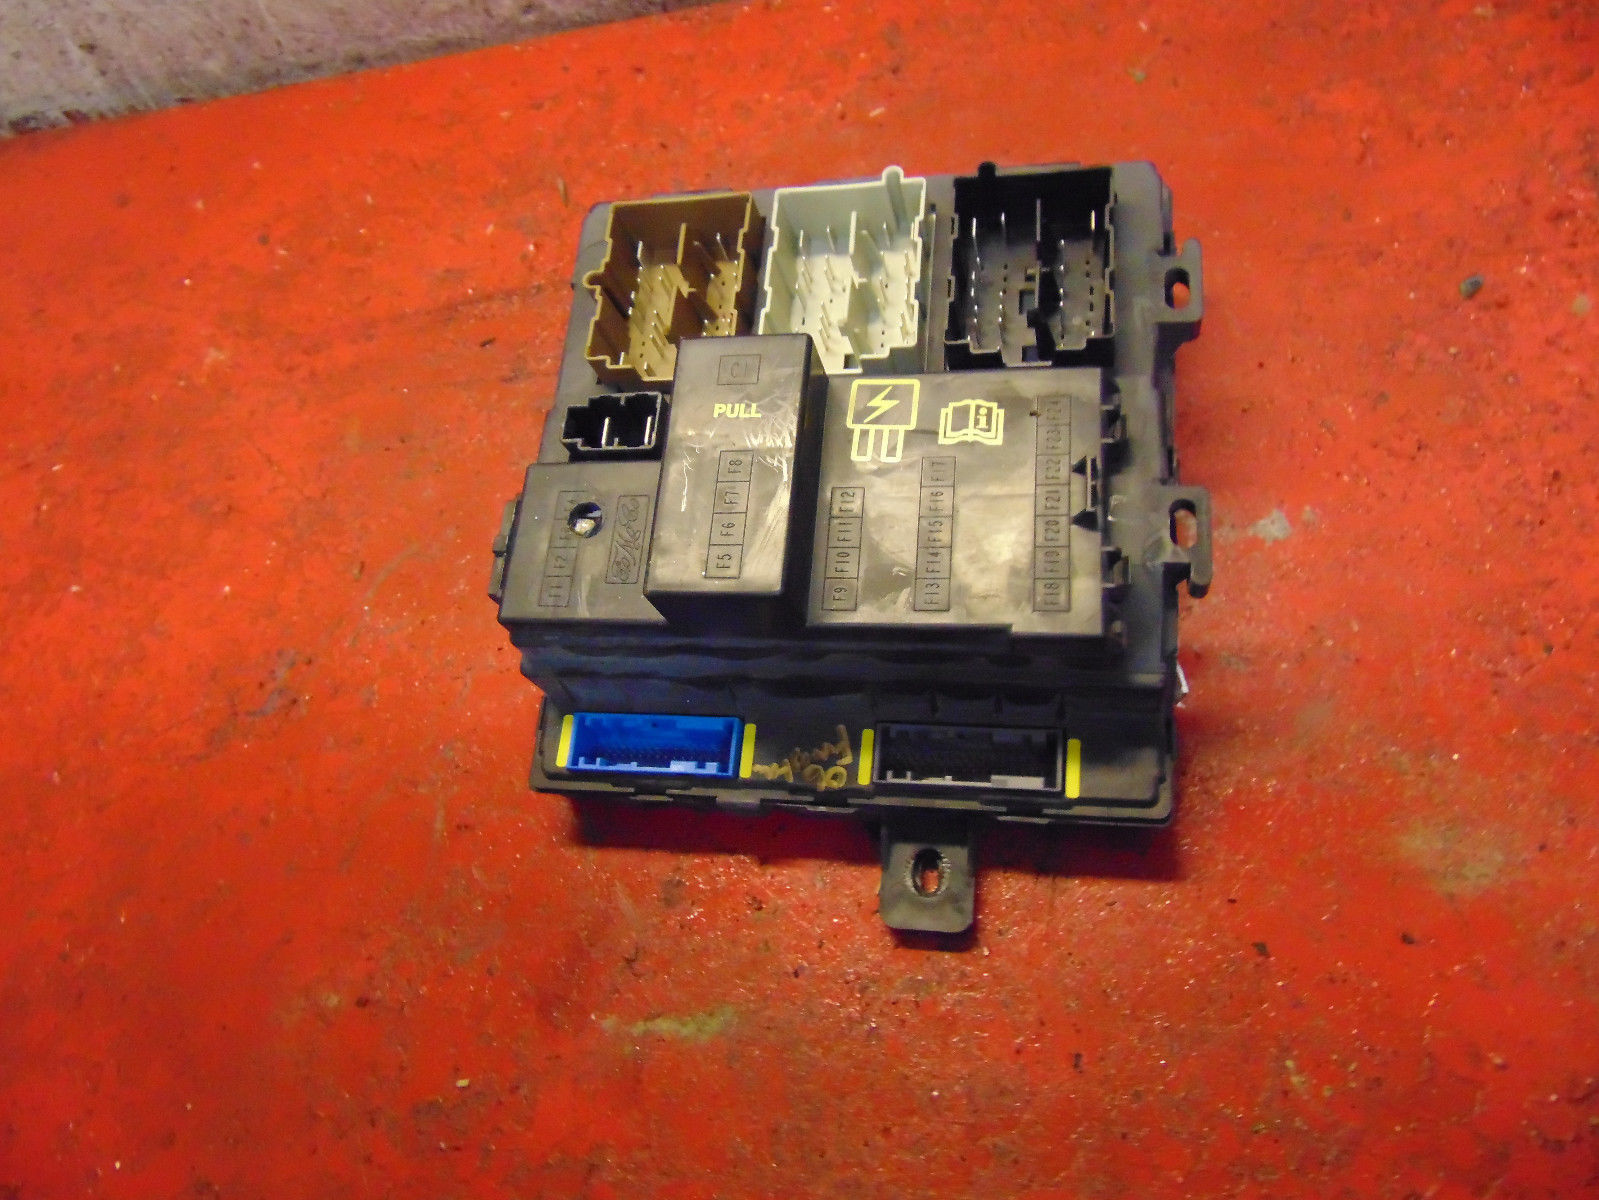 05 06 07 Ford Freestyle interior fuse box body multi-function control module